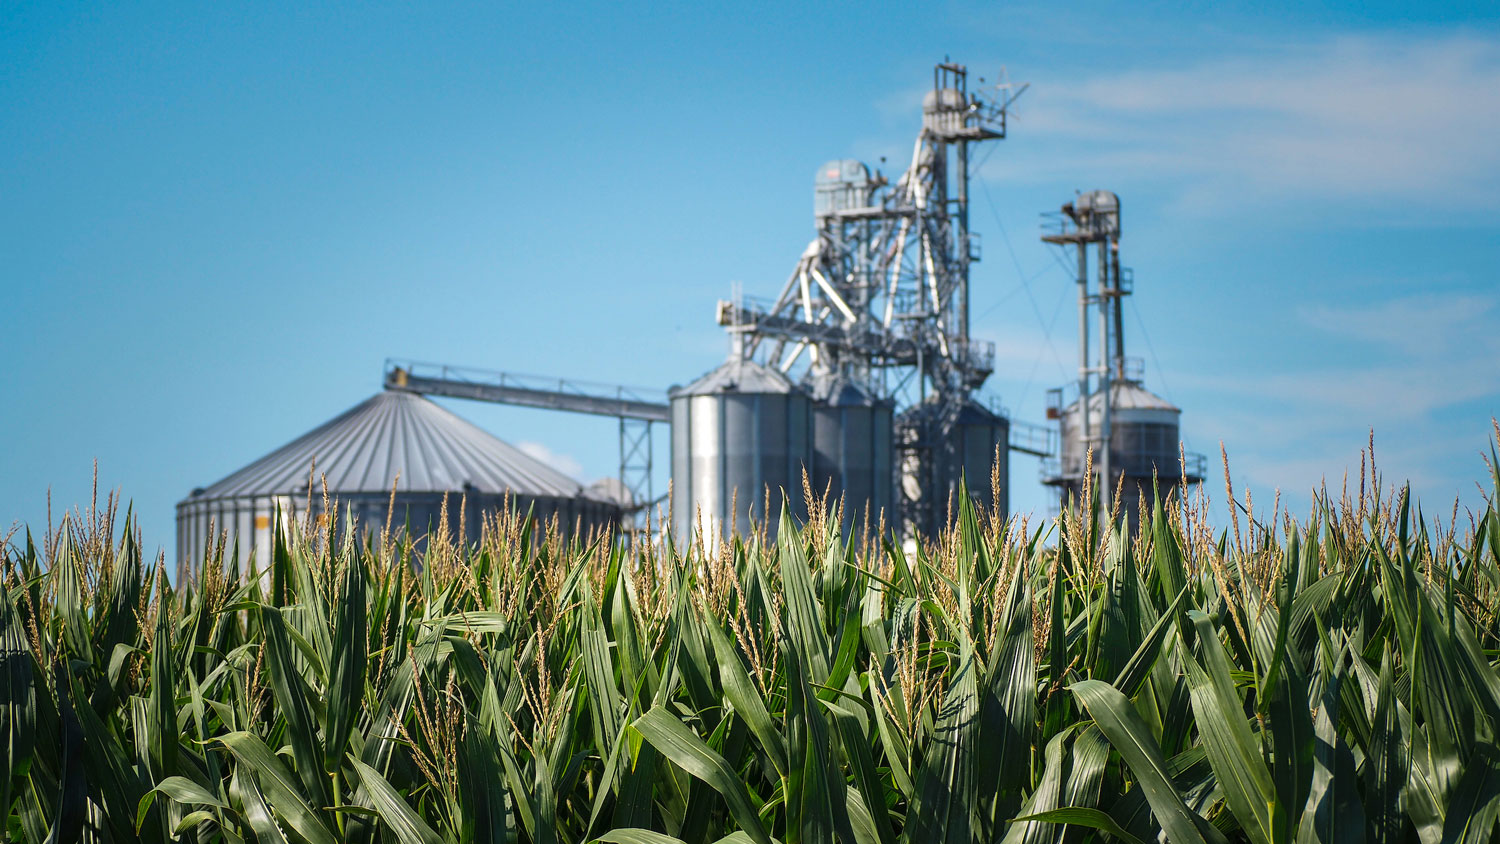 Corn field with silos in the background